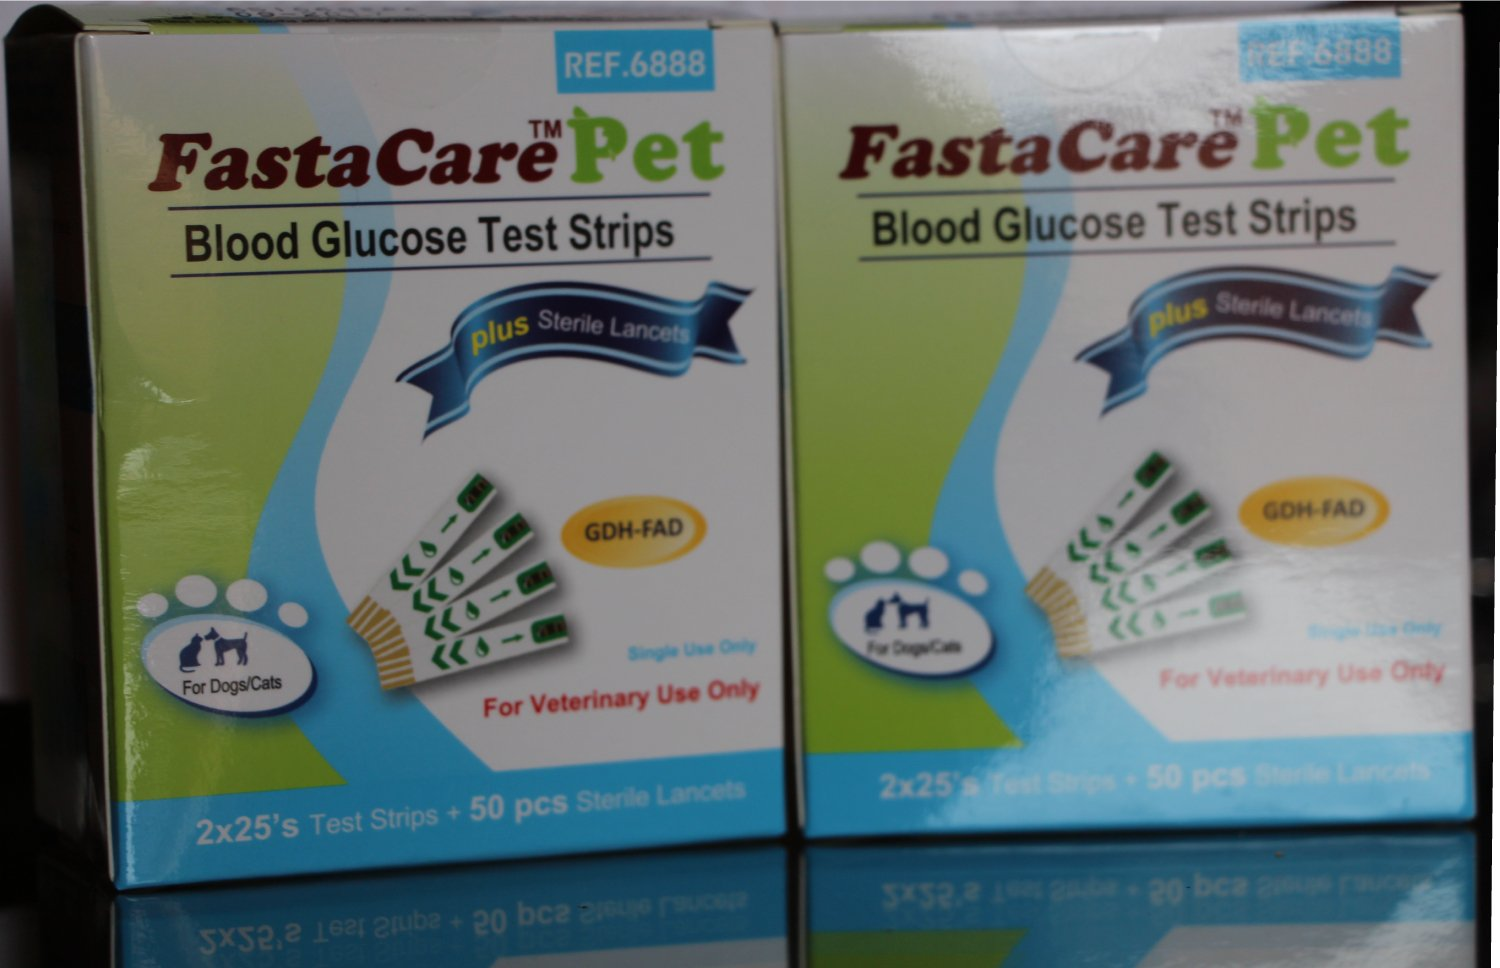 2 Packs of FastaCare Pet - Blood Glucose Test Strips + Lancets (2 x50's) FastaCare Therapeutics Inc.